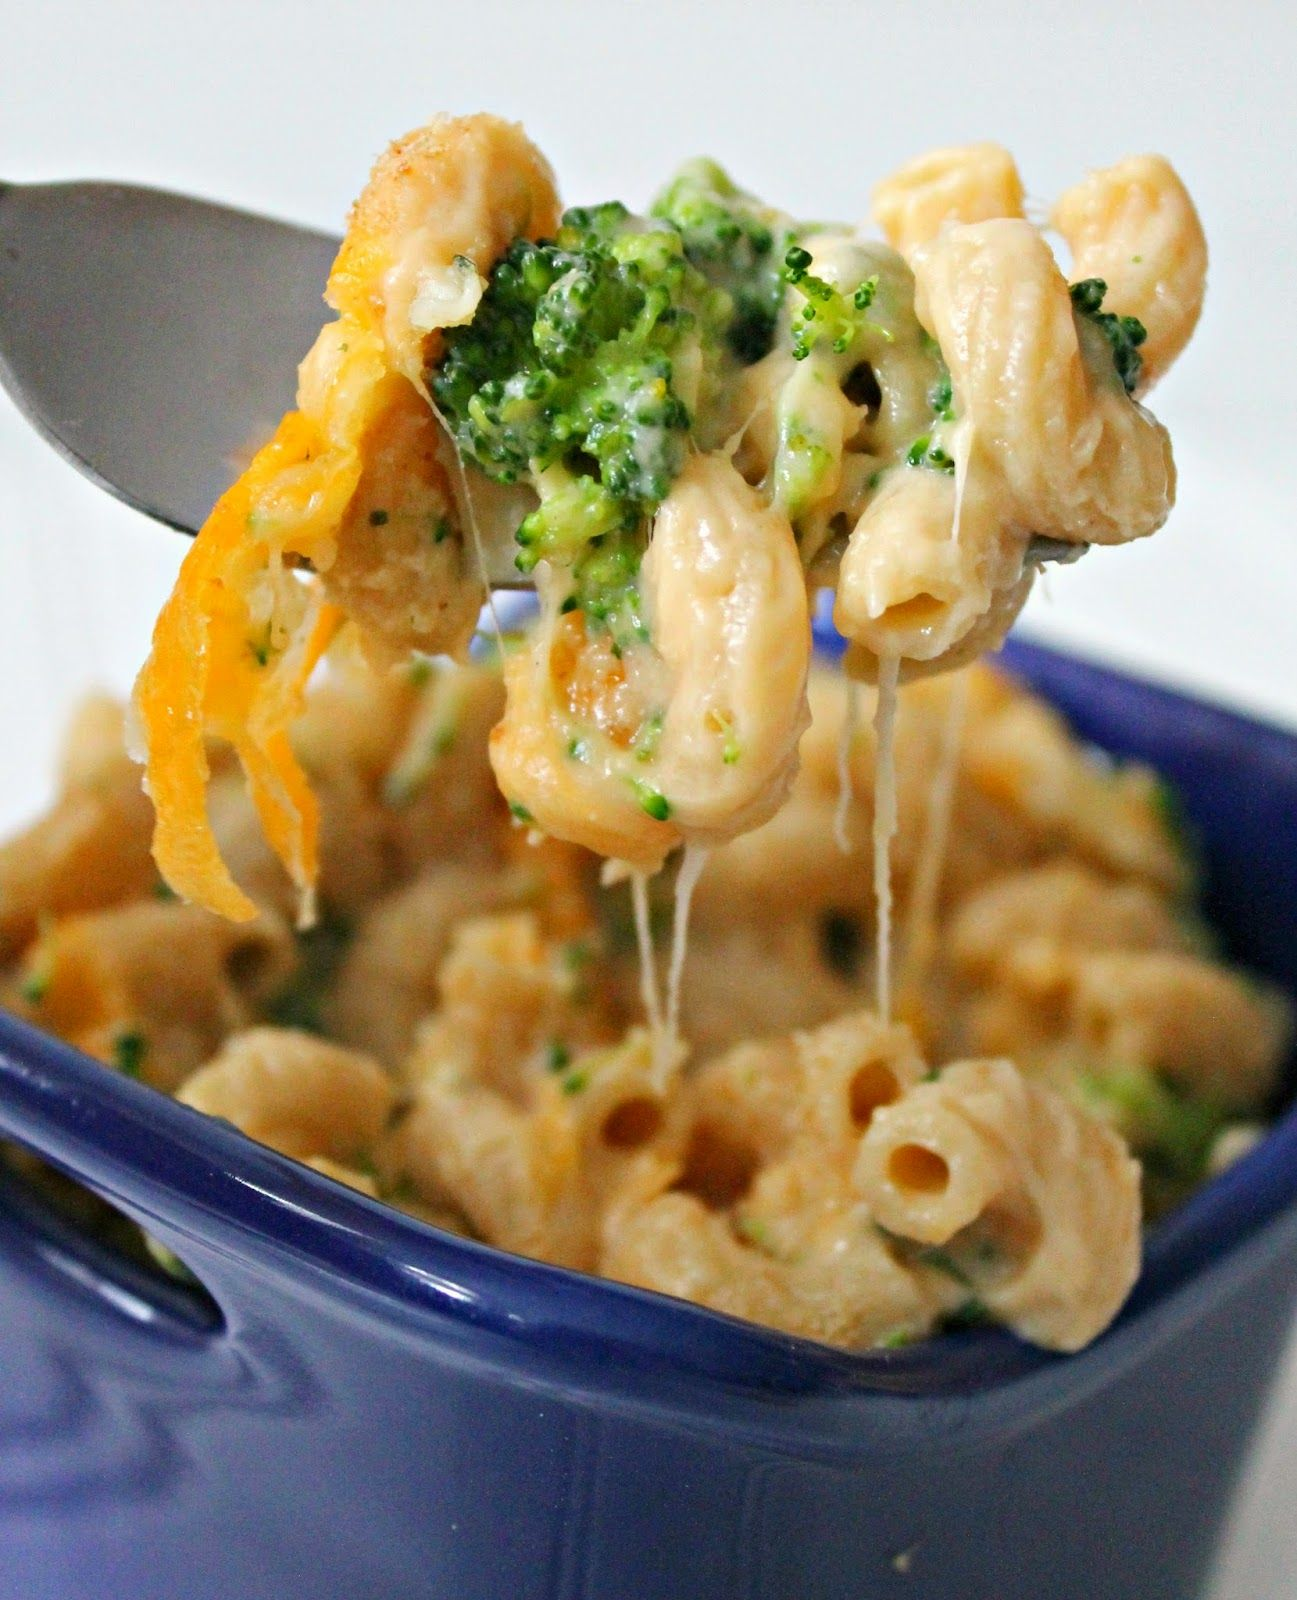 Skinny Broccoli Mac and Cheese! - It is delicious!